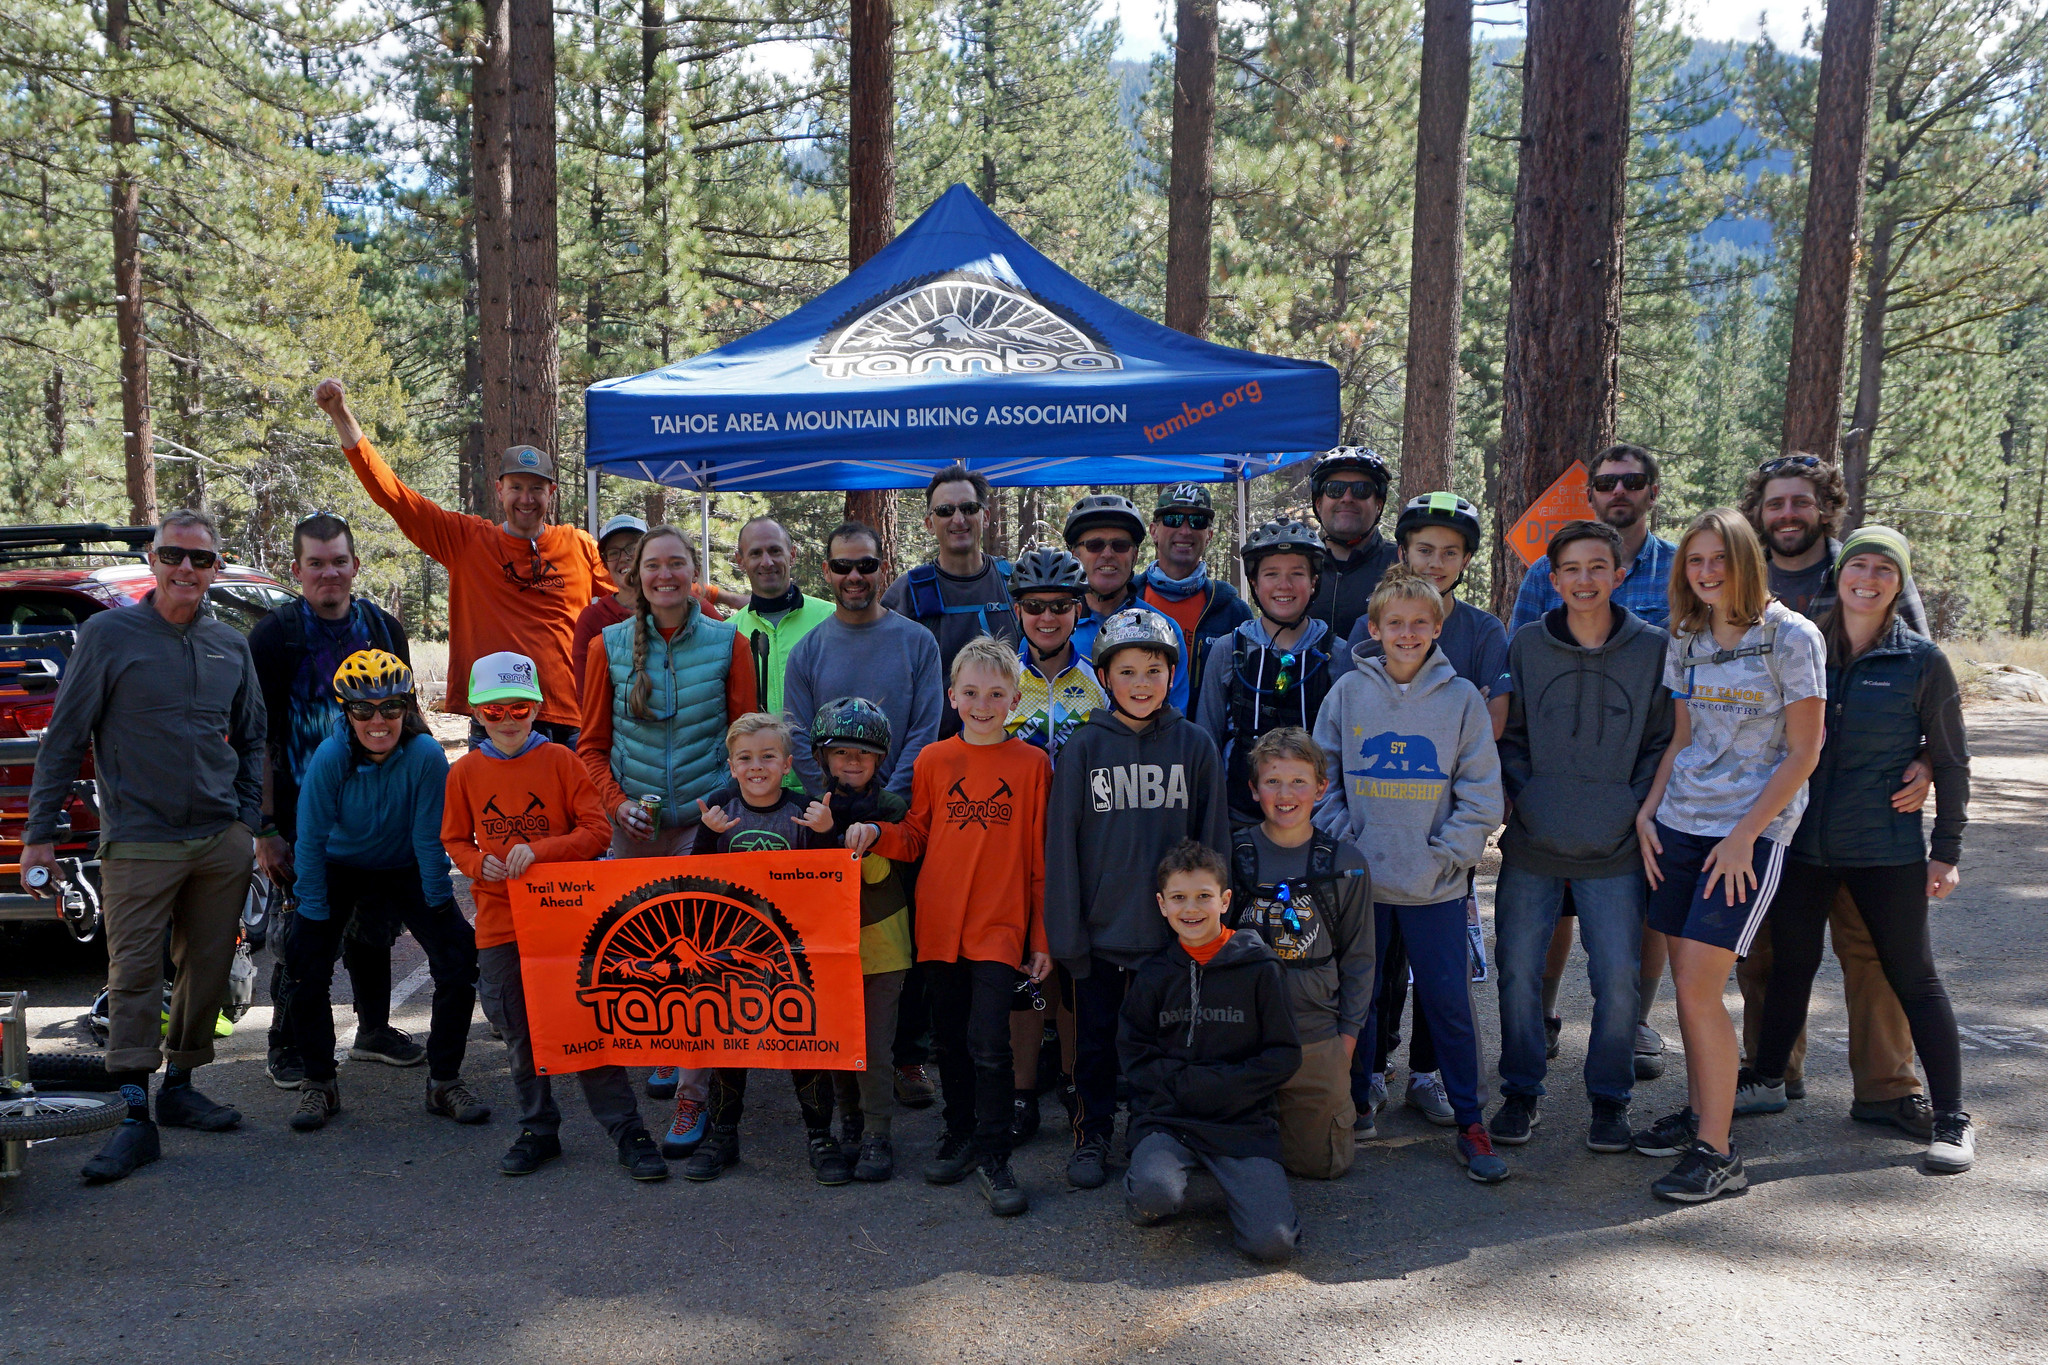 A group of people who volunteered for mountain biking organization TAMBA.